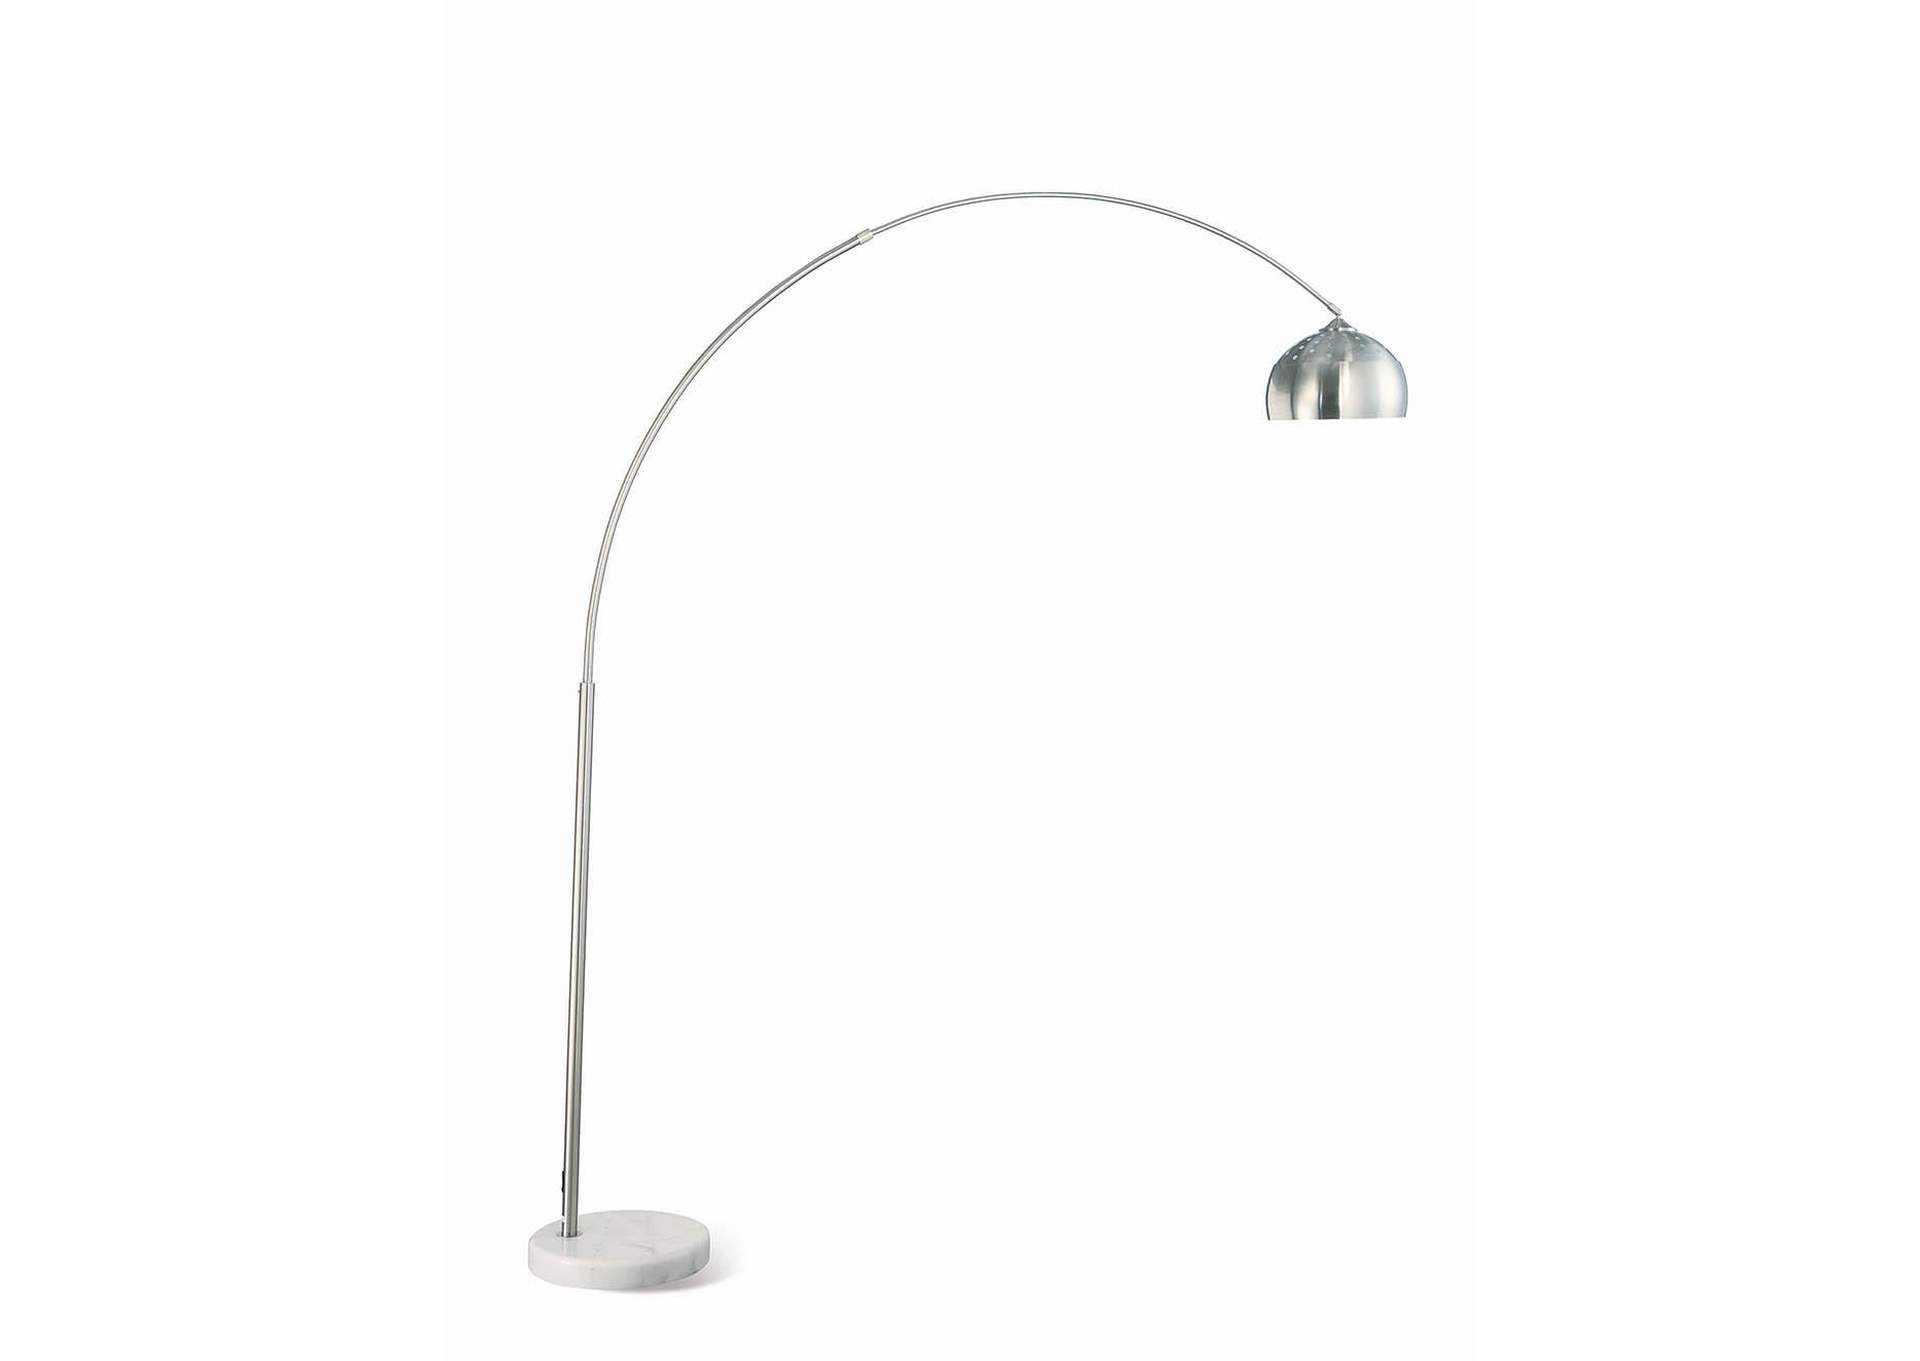 Chrome Contemporary Chrome Floor Lamp,Coaster Furniture